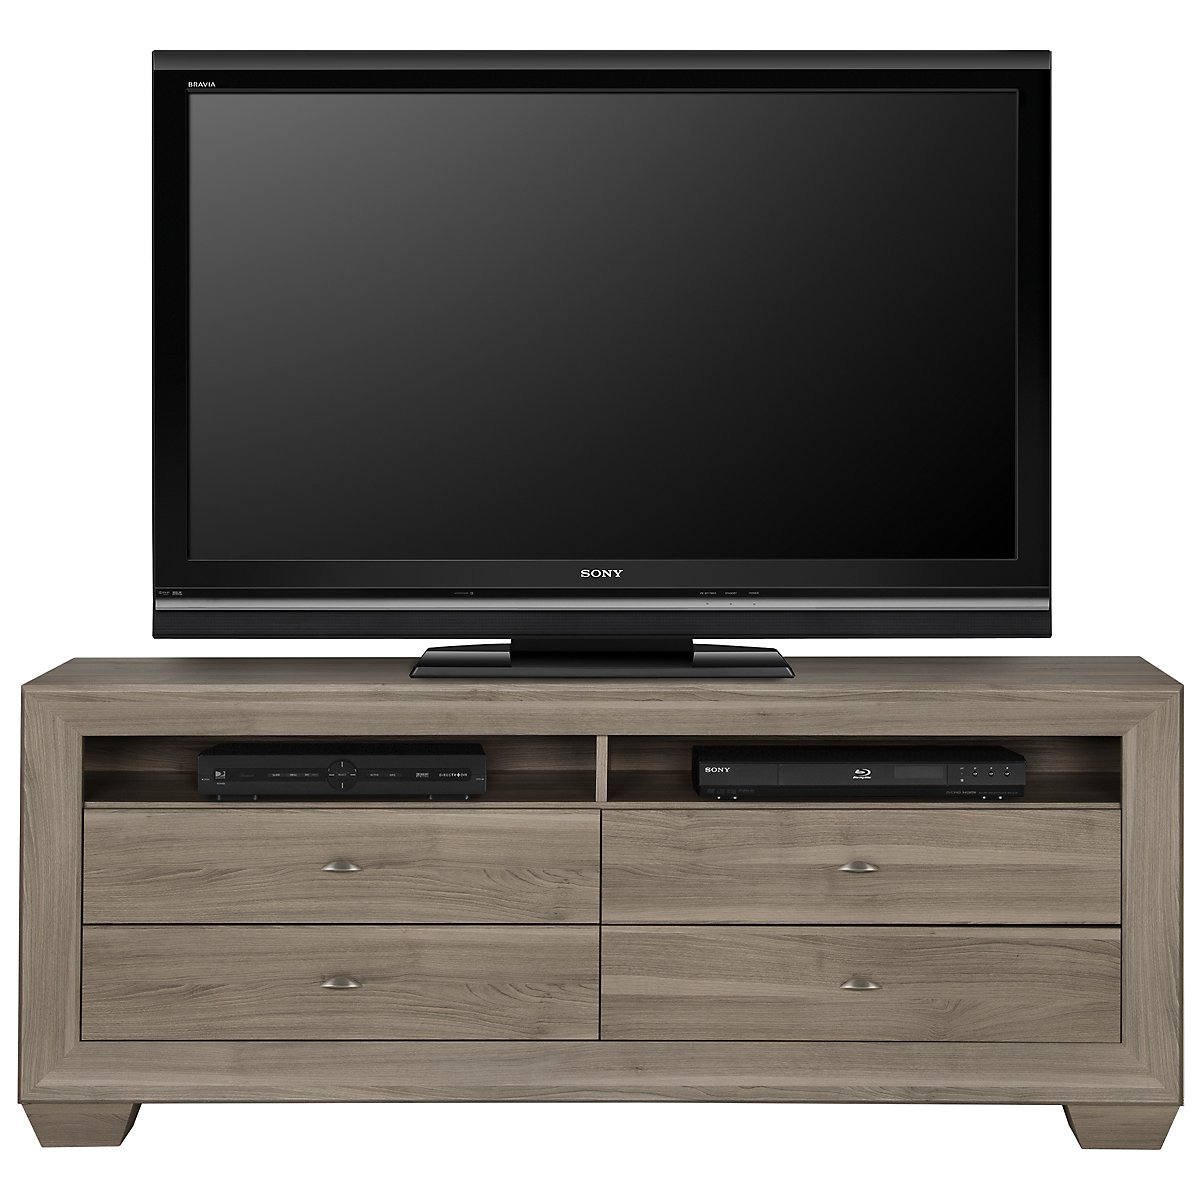 City furniture adele2 light tone 70 tv stand for Tv stand kids room